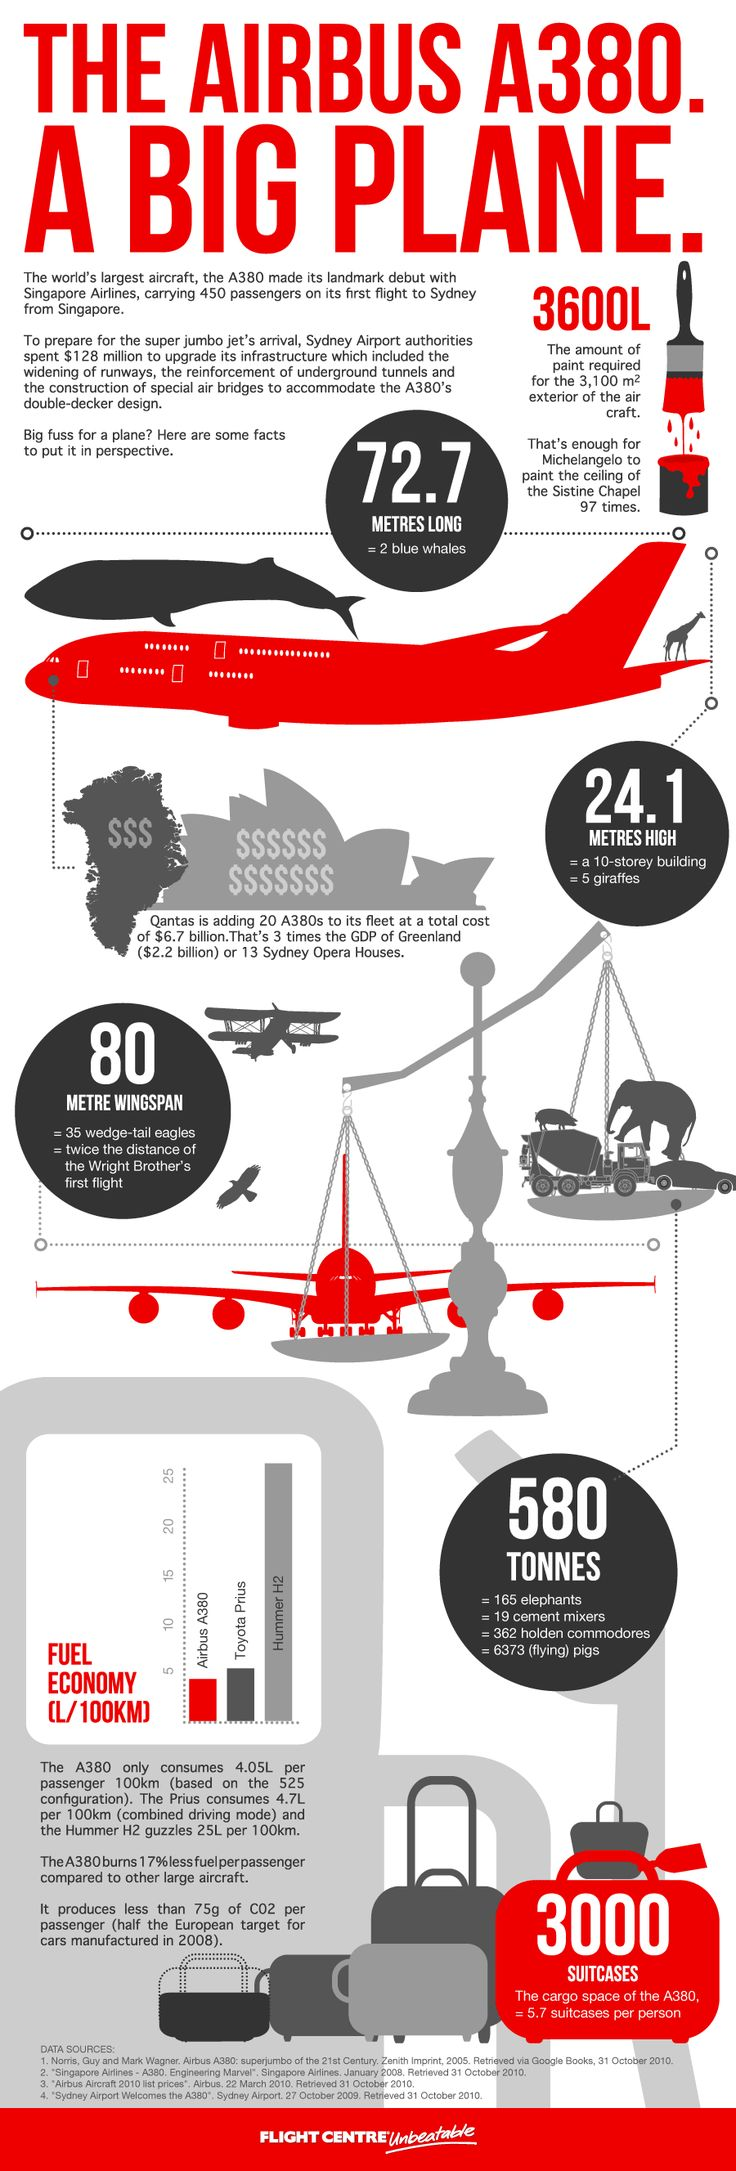 Everything you need to know about the A380 in an infographic. Did you know?